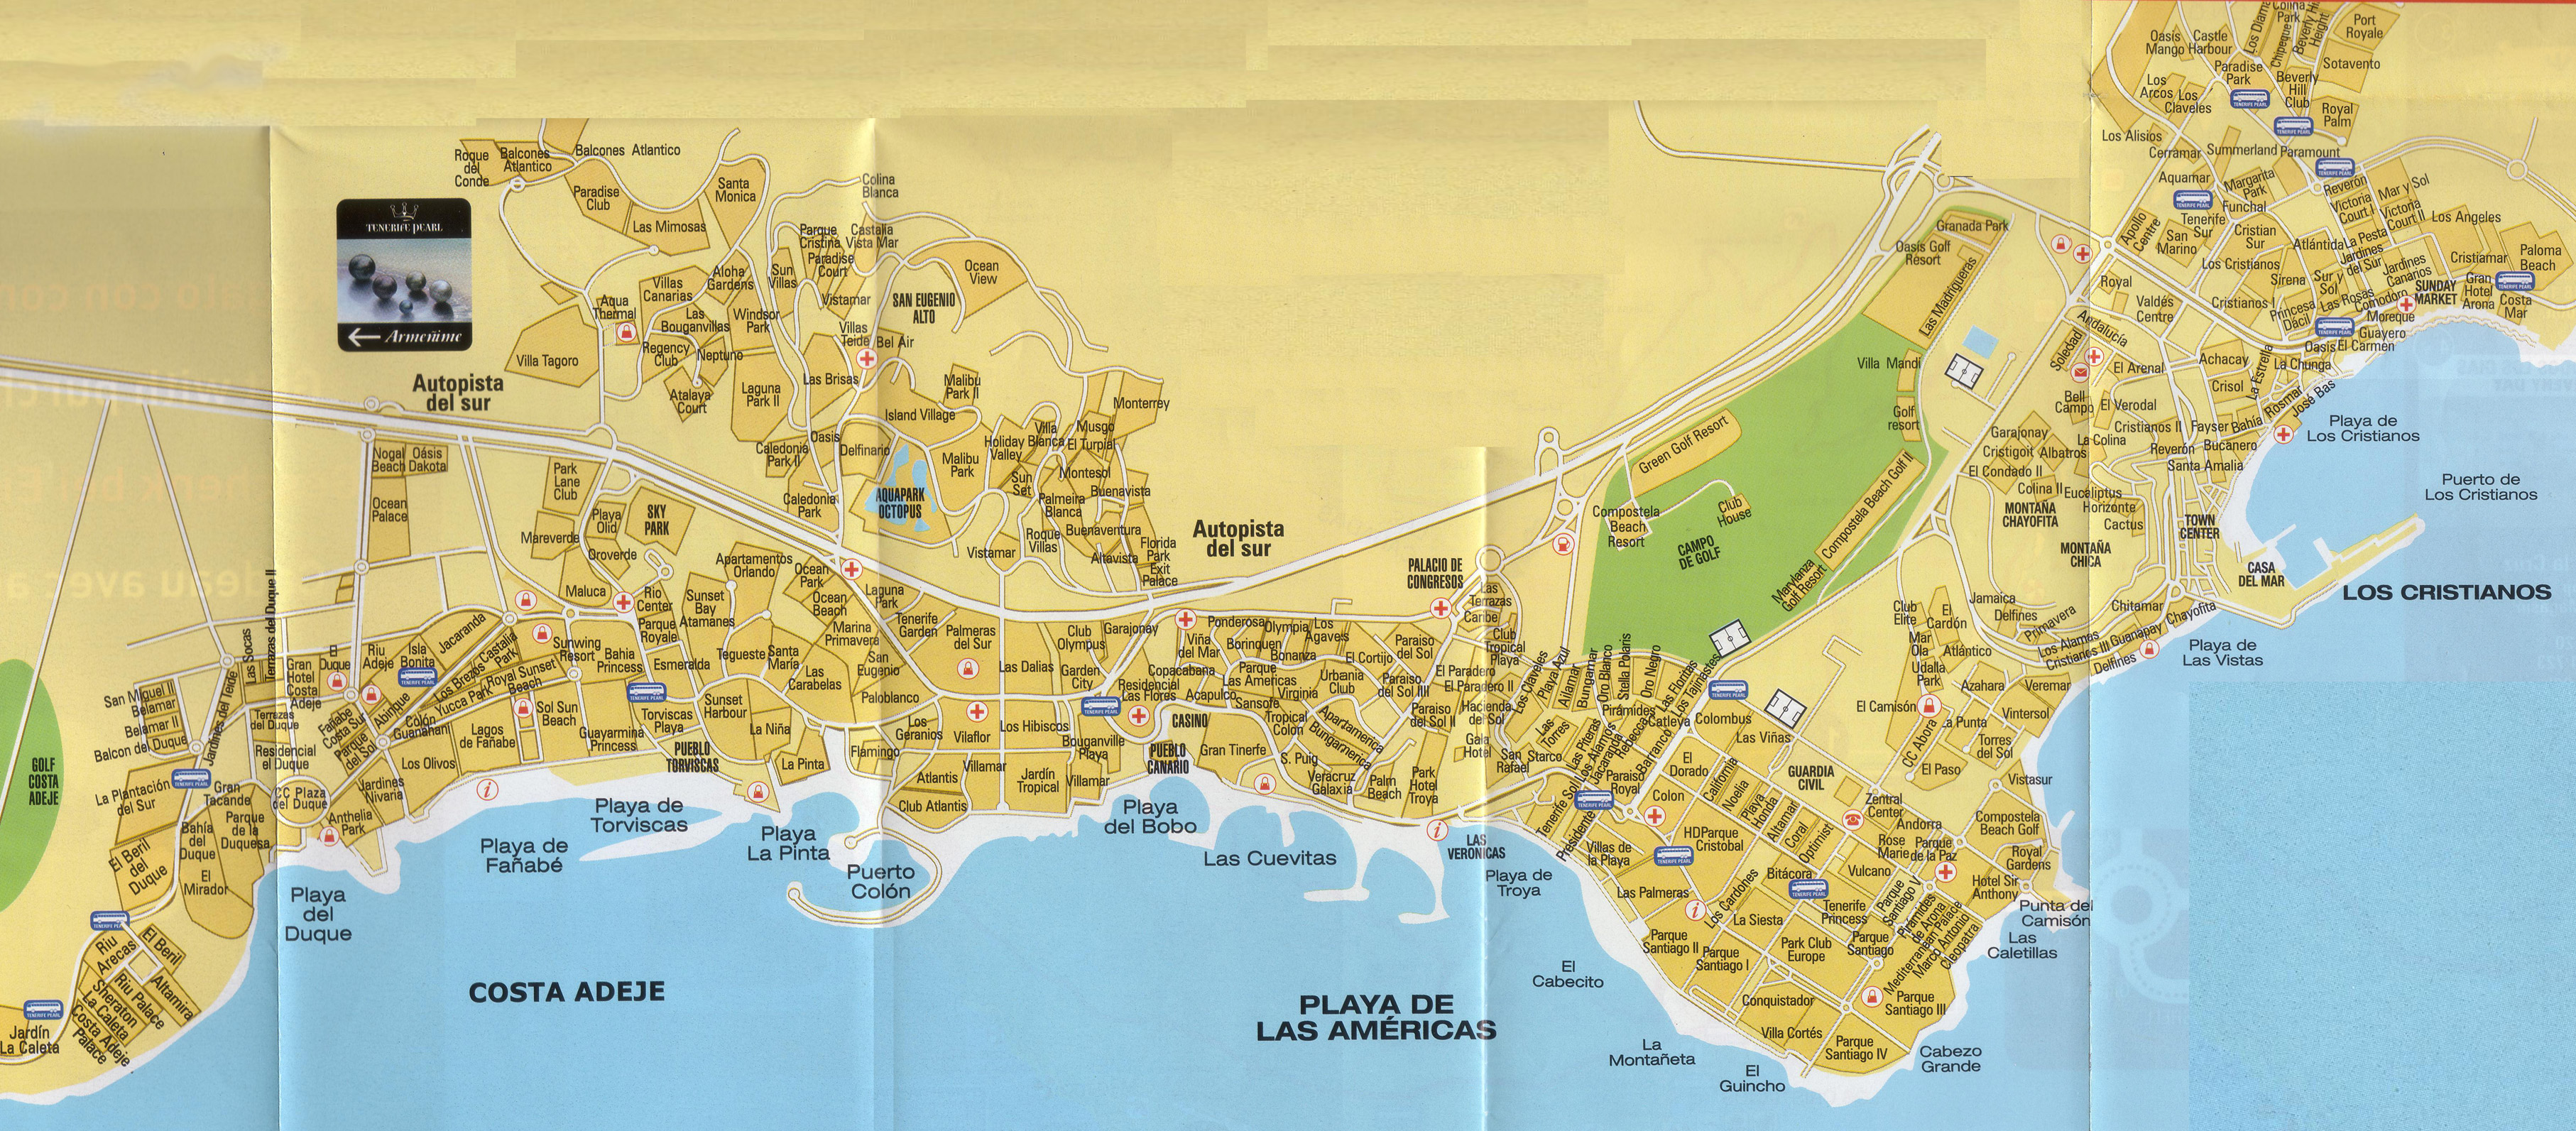 Map Of Spain Tenerife.Tenerife Map Tenerife Island Maps Map Of Tenerife